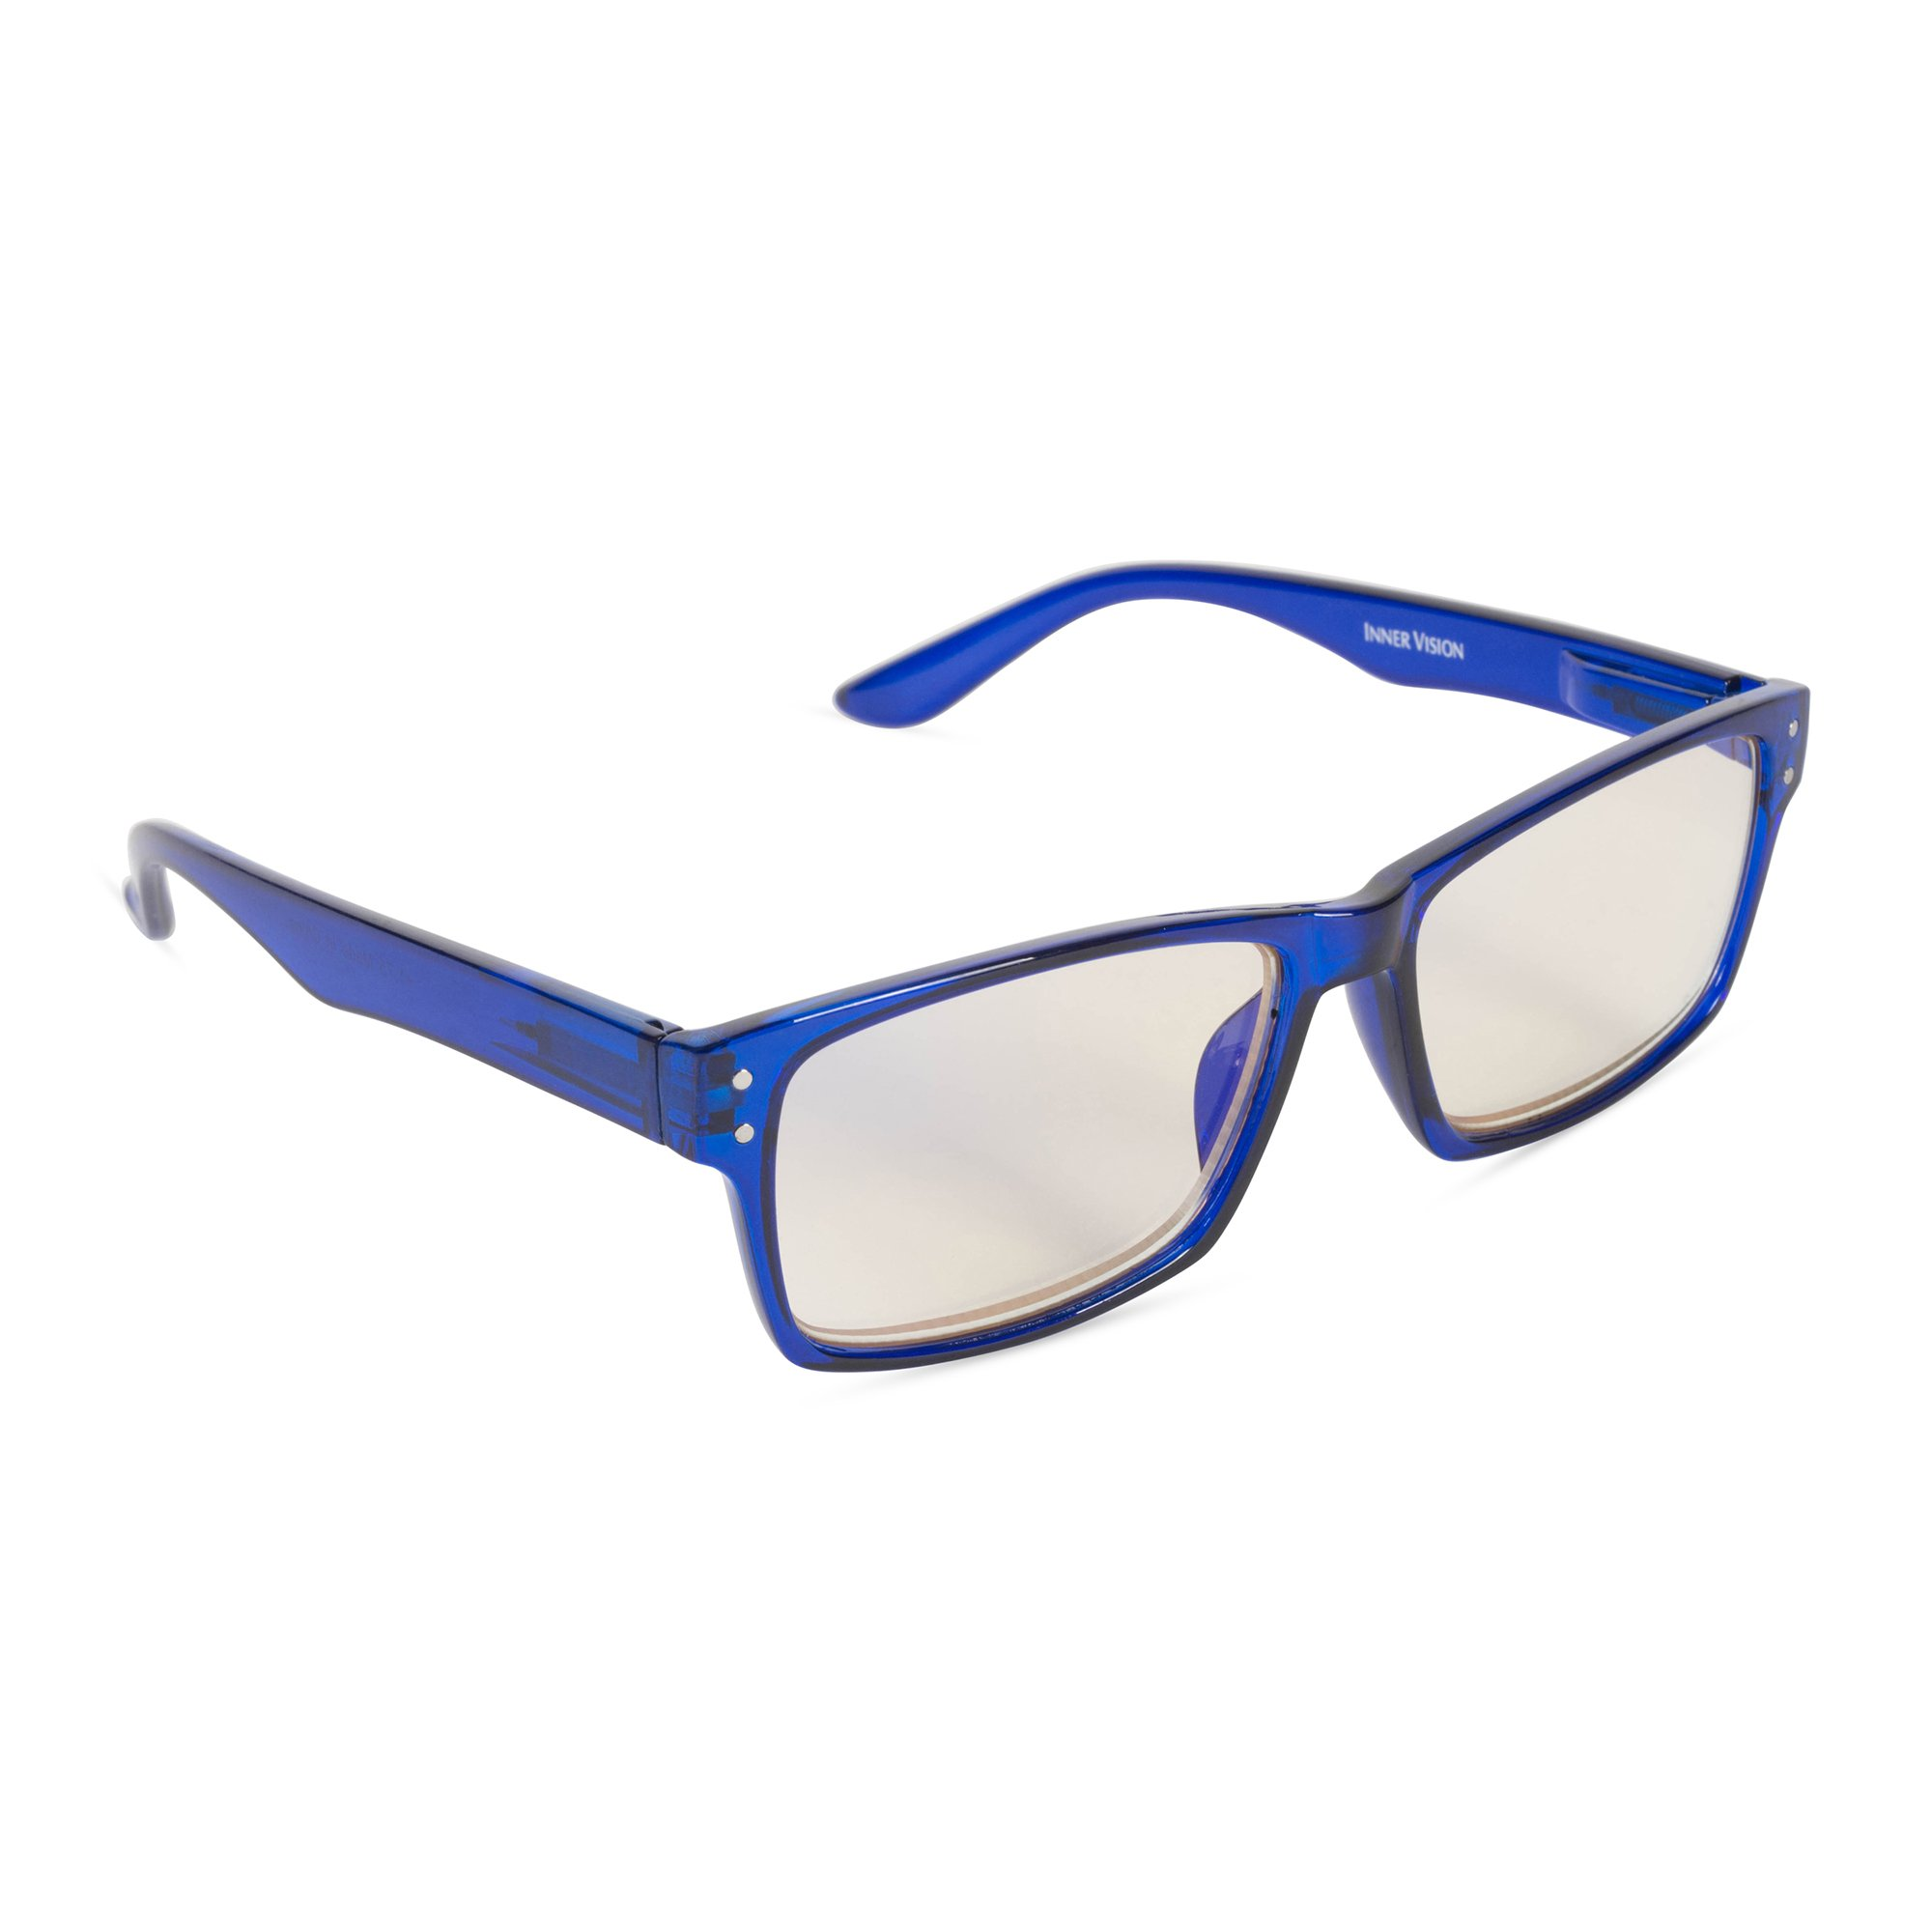 4e3015cb2be Inner Vision Eye Strain Relief Computer Screen Glasses w Case - Anti Blue  Light